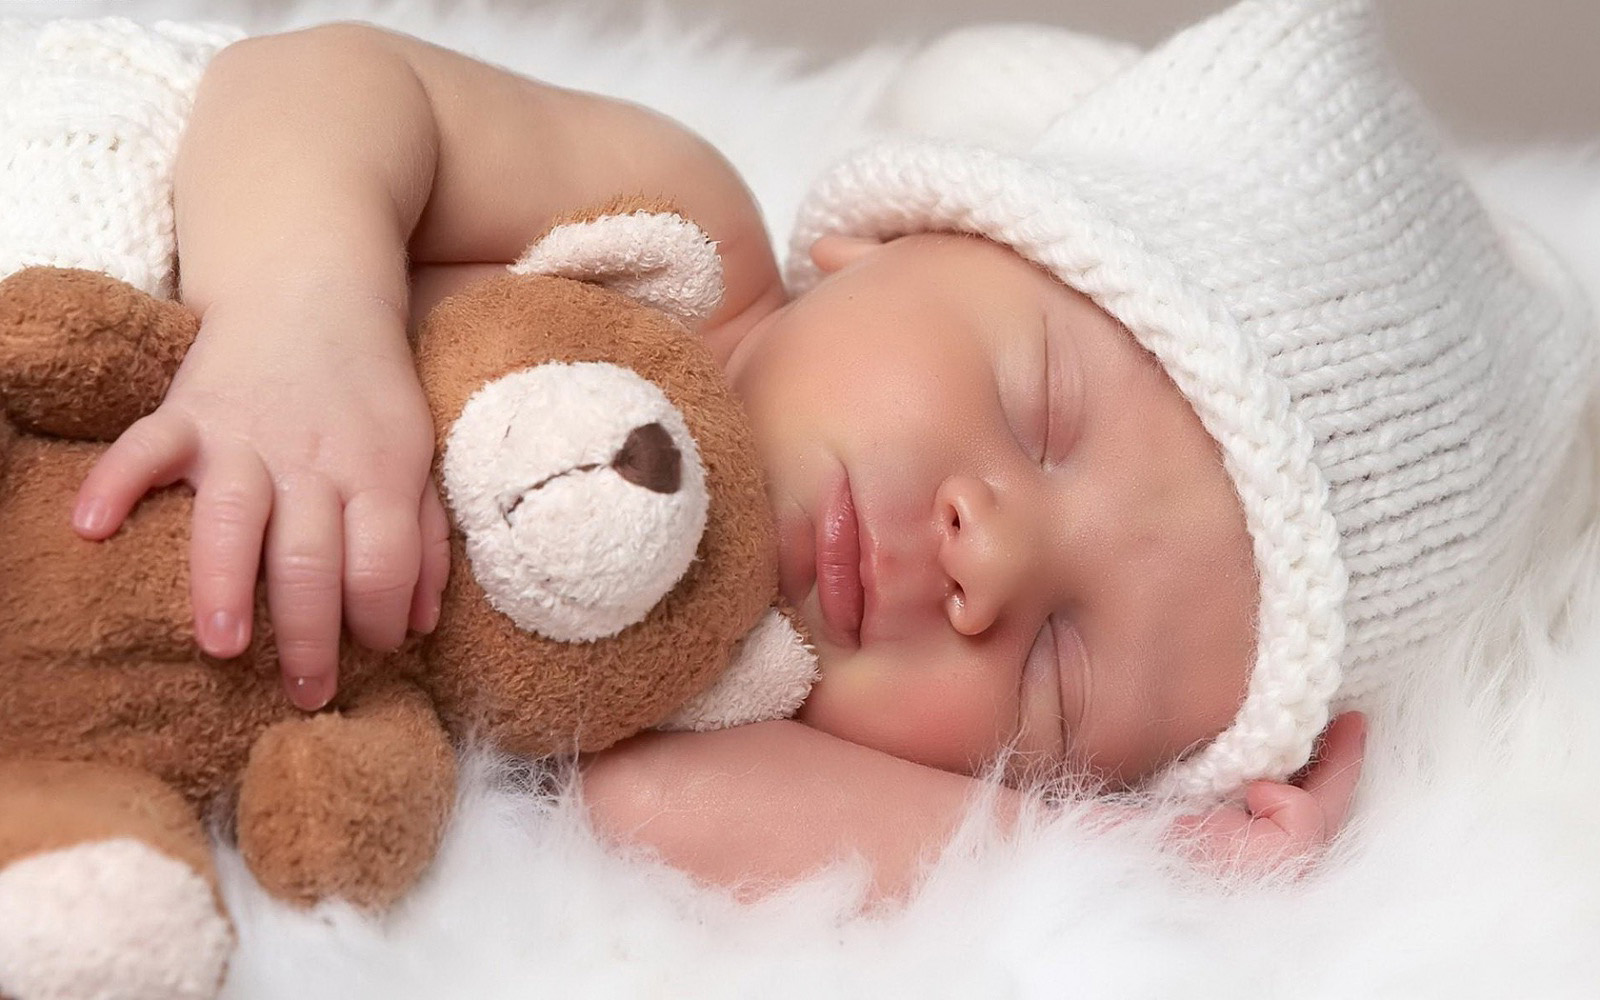 Baby Wallpapers HD: Lovely Baby Wallpapers HD